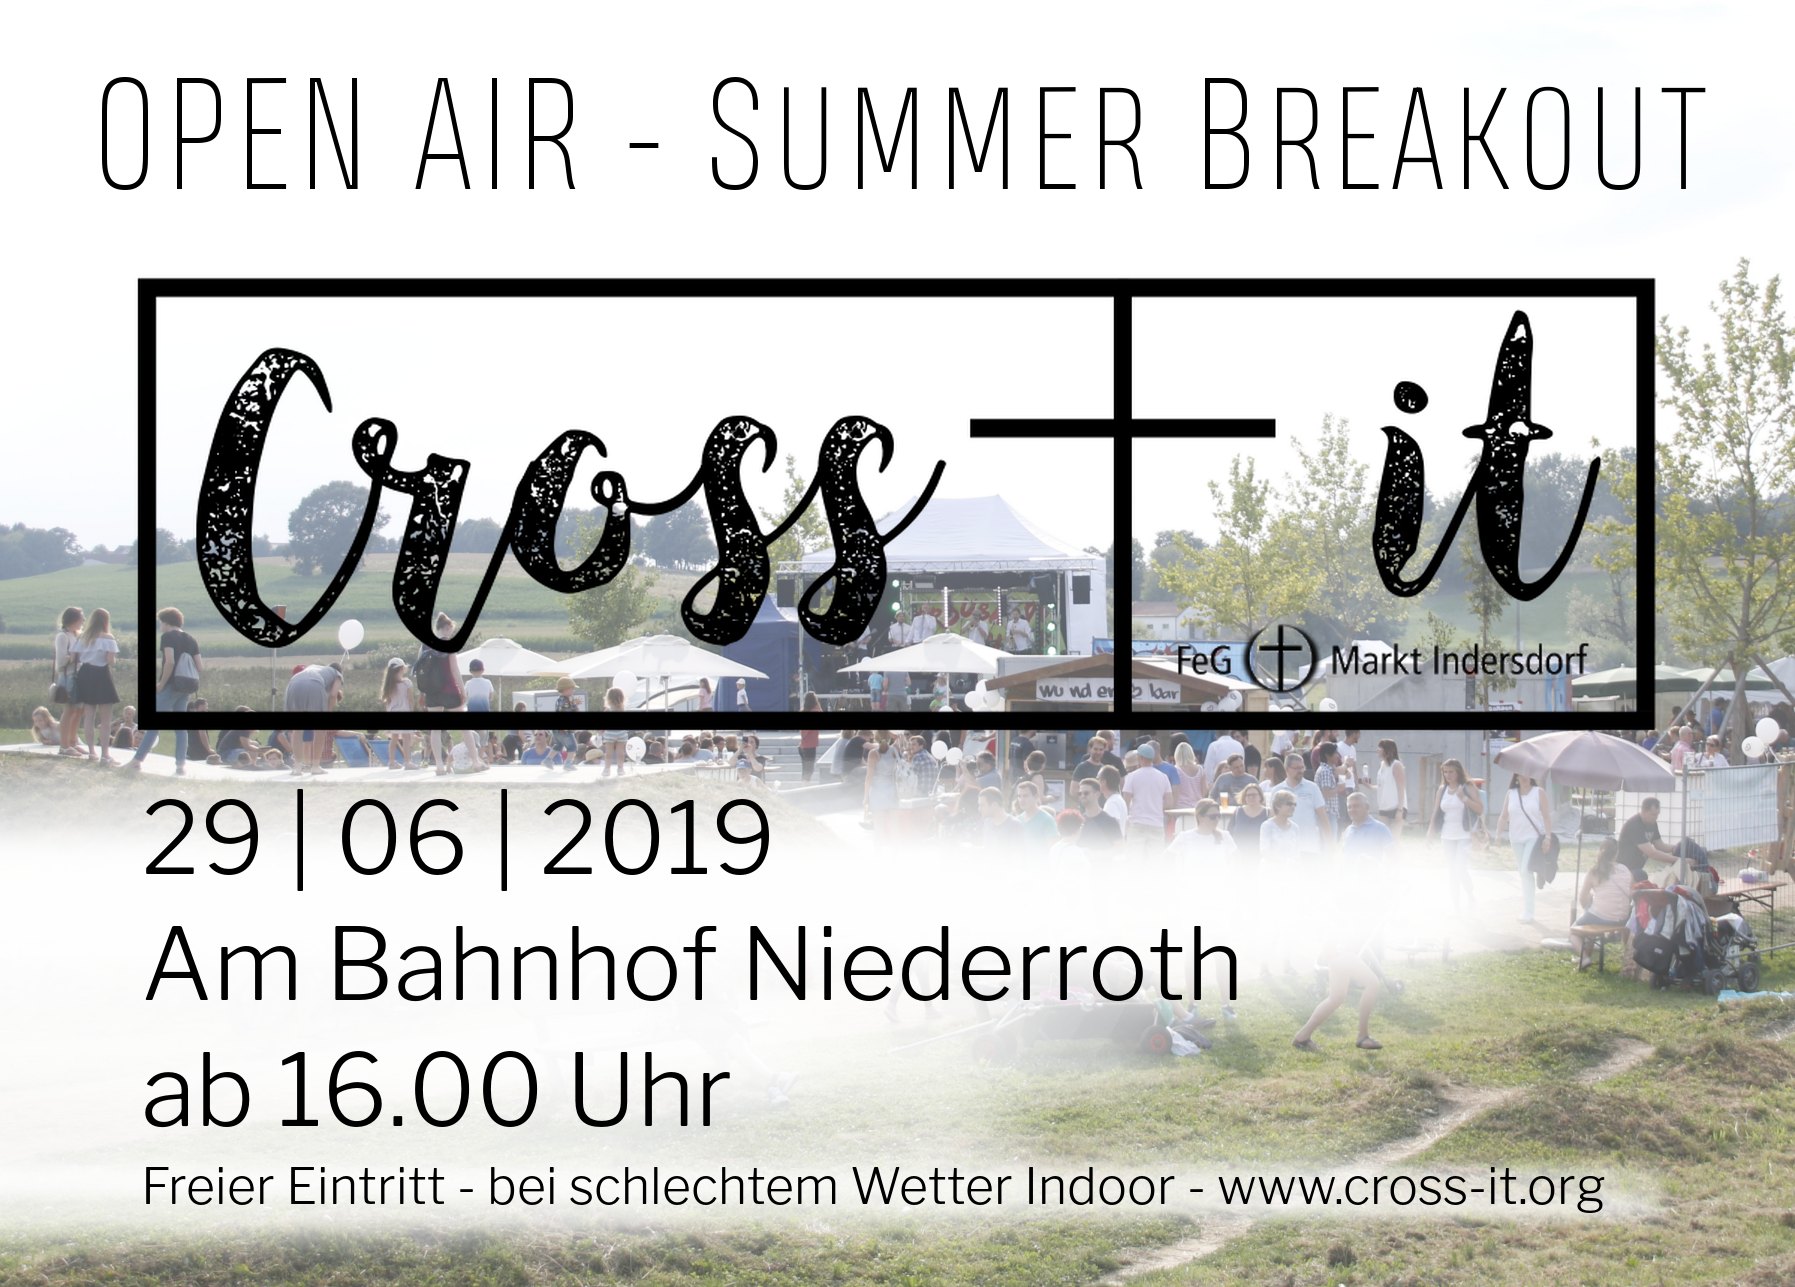 cross-it-Summer-Breakout-Flyer-front